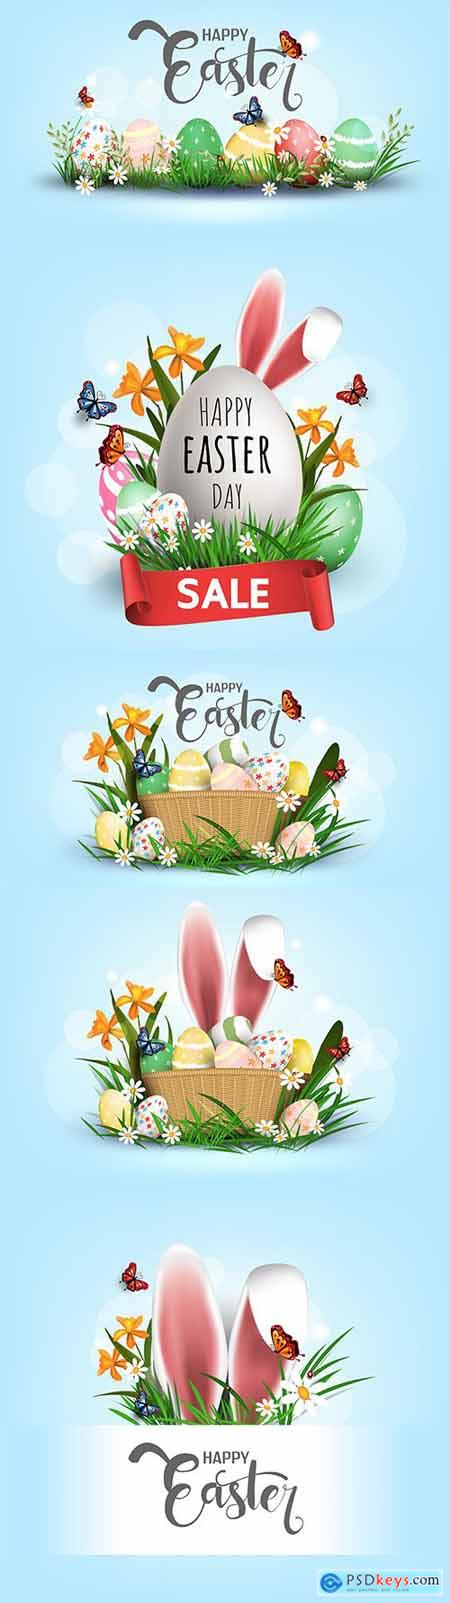 Happy Easter eggs in green grass with white flowers design